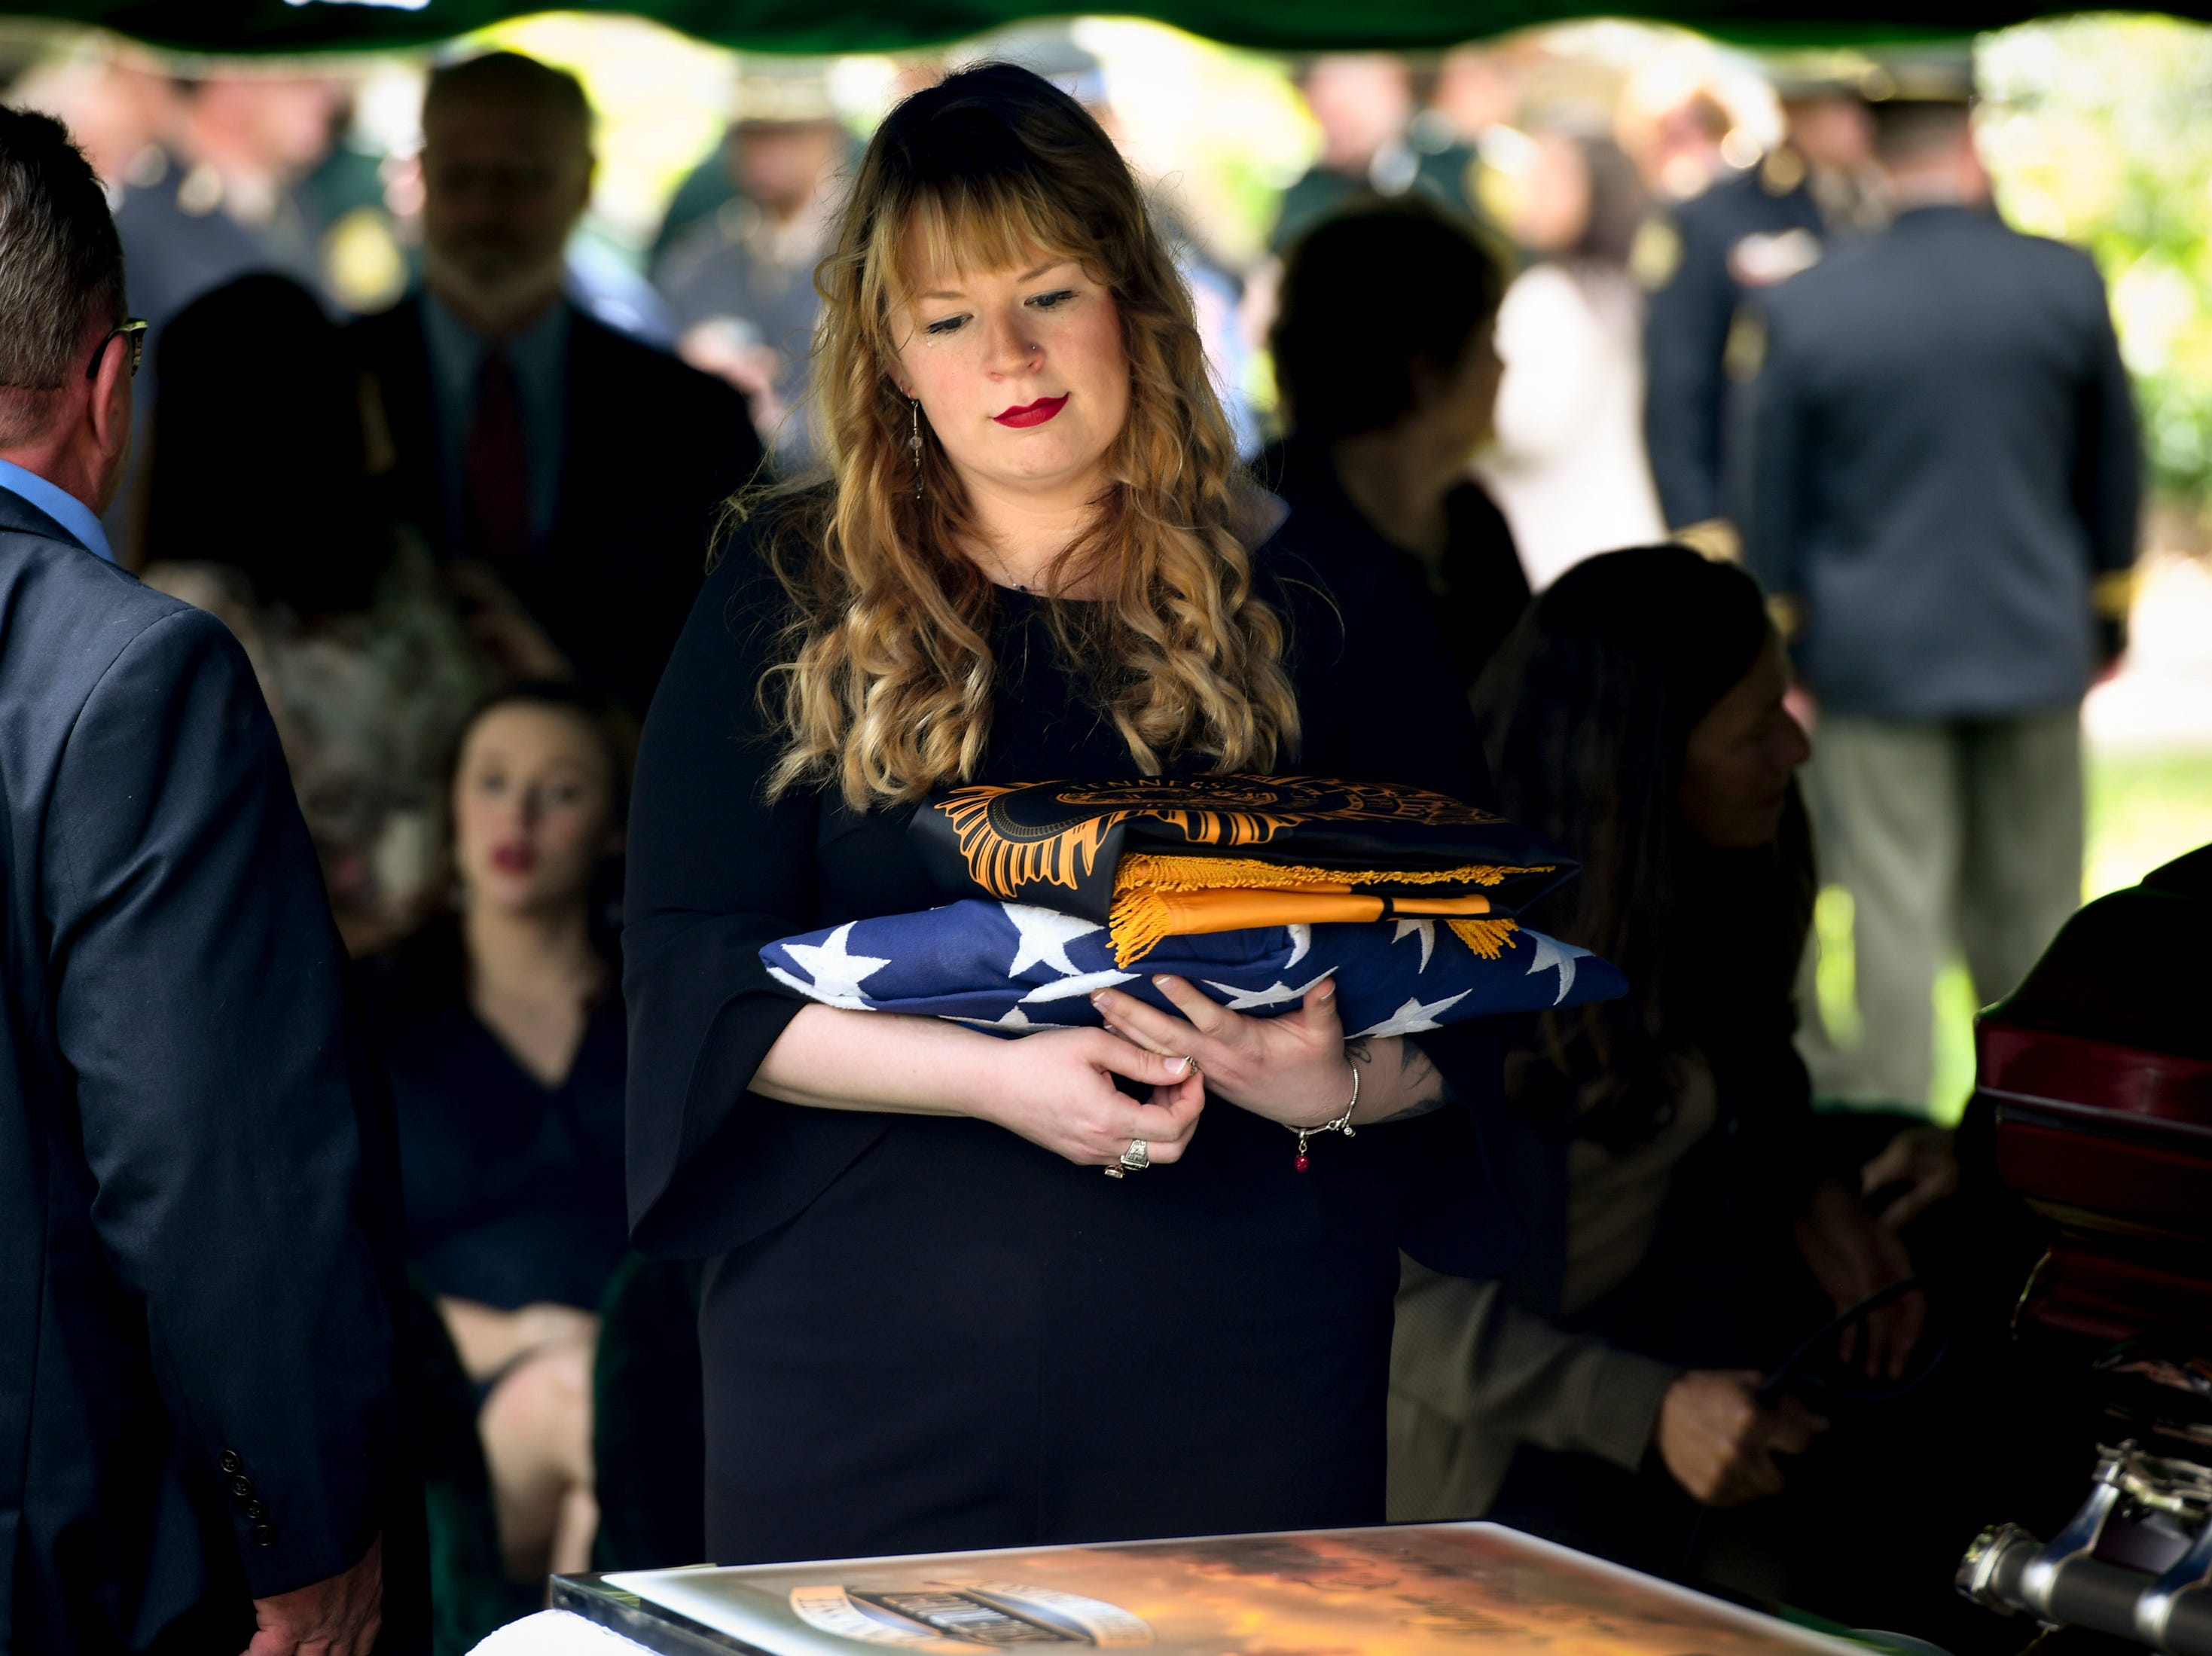 Anna Lax Gatti, wife of Matthew Gatti,  looks at her husband\s casket during the burial of Tennessee State Trooper Matthew Gatti at Ridgecrest Cemetery in Jackson, Tenn., Monday, May 13, 2019. Gatti died in the line of duty in an accident while responding to a car fire on I-40 in Madison County on May 6.